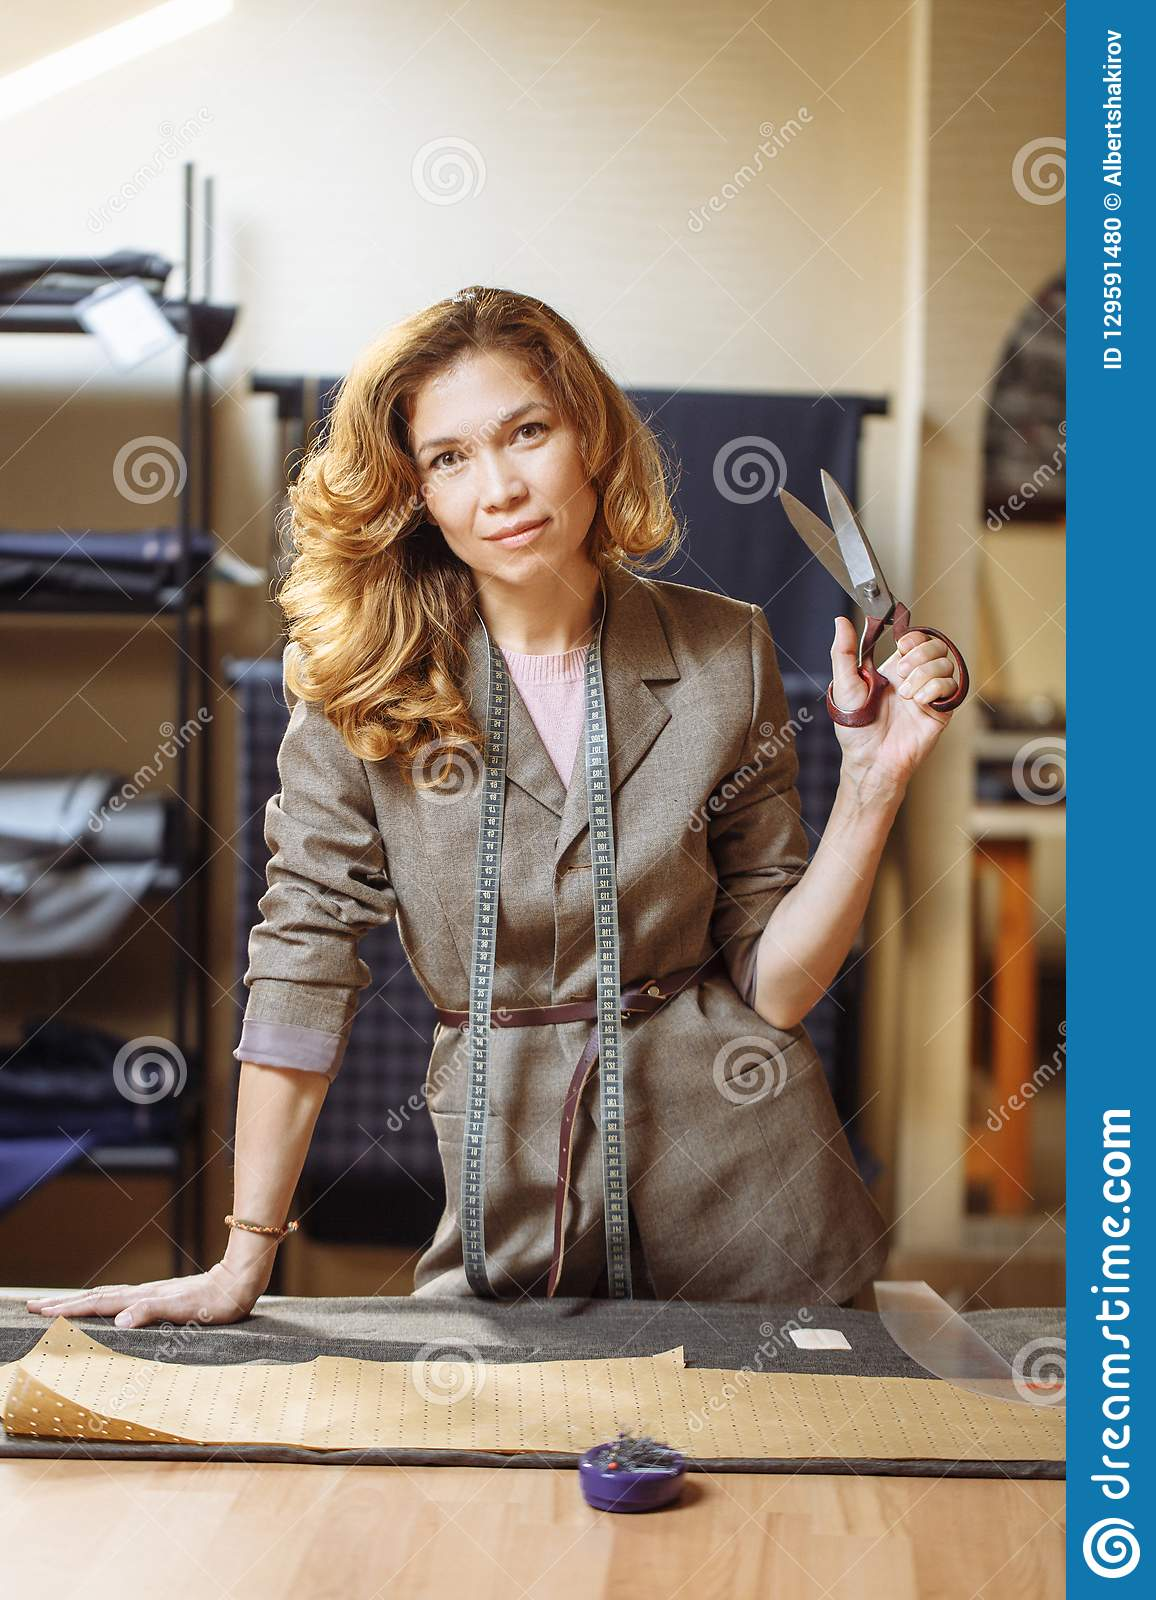 Pretty focused young woman fashion designer cutting grey fabric in studio